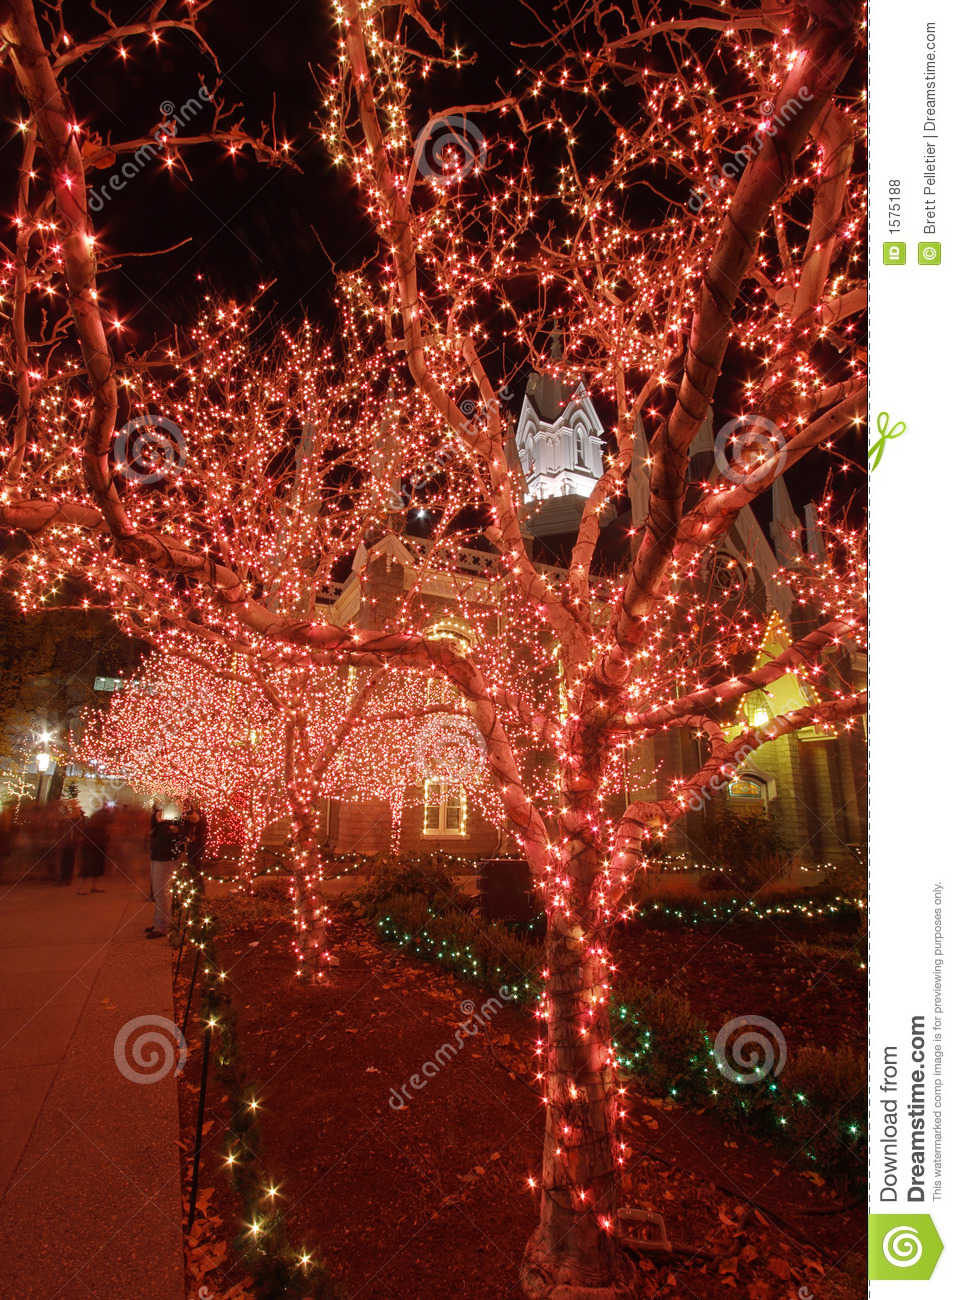 Christmas Lights In The Night 2 Royalty Free Stock Photos